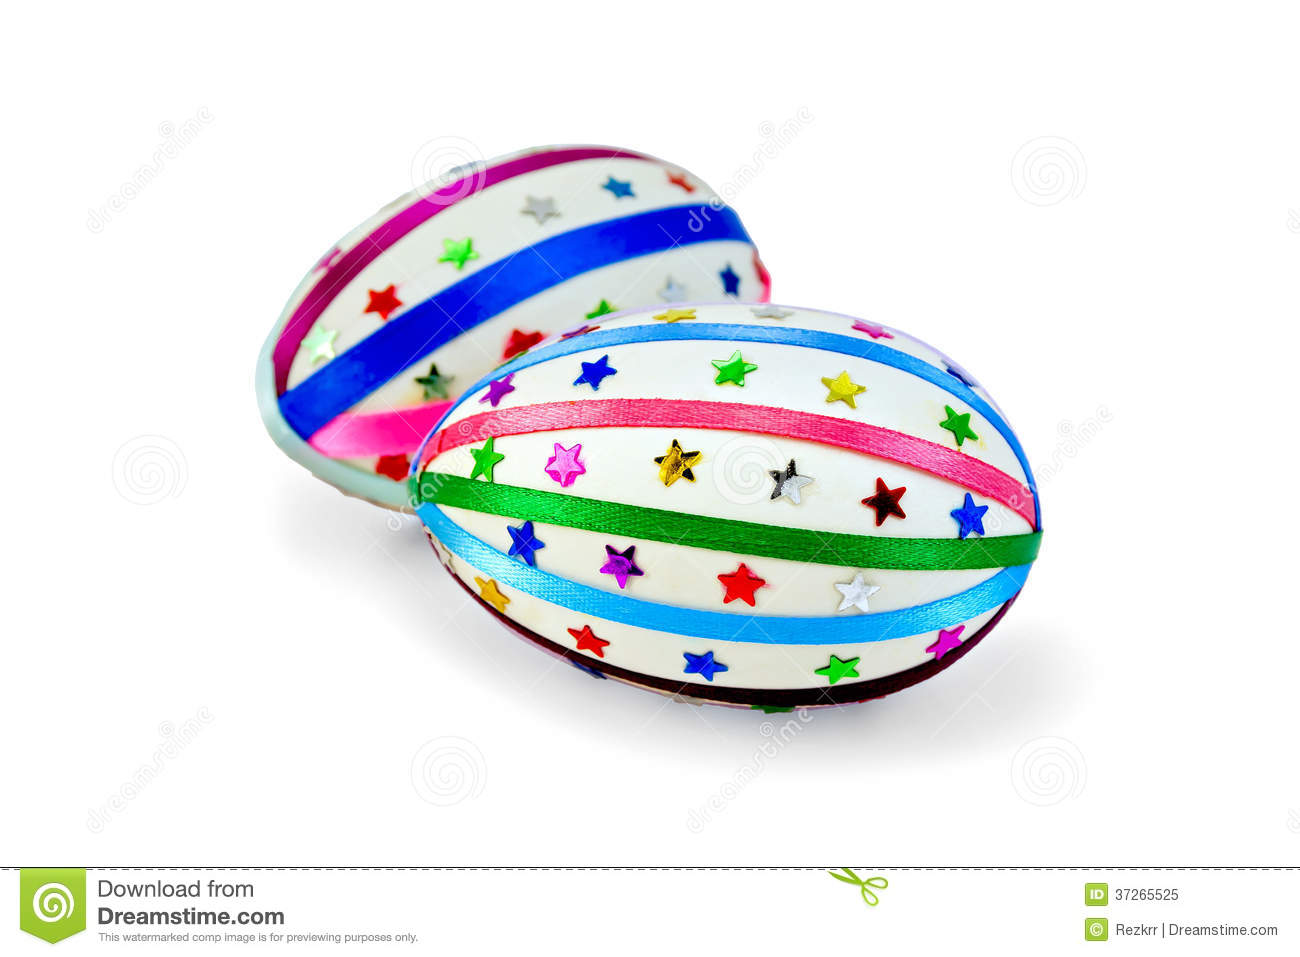 Easter Egg With Colored Ribbons And Sequins Royalty Free Stock.